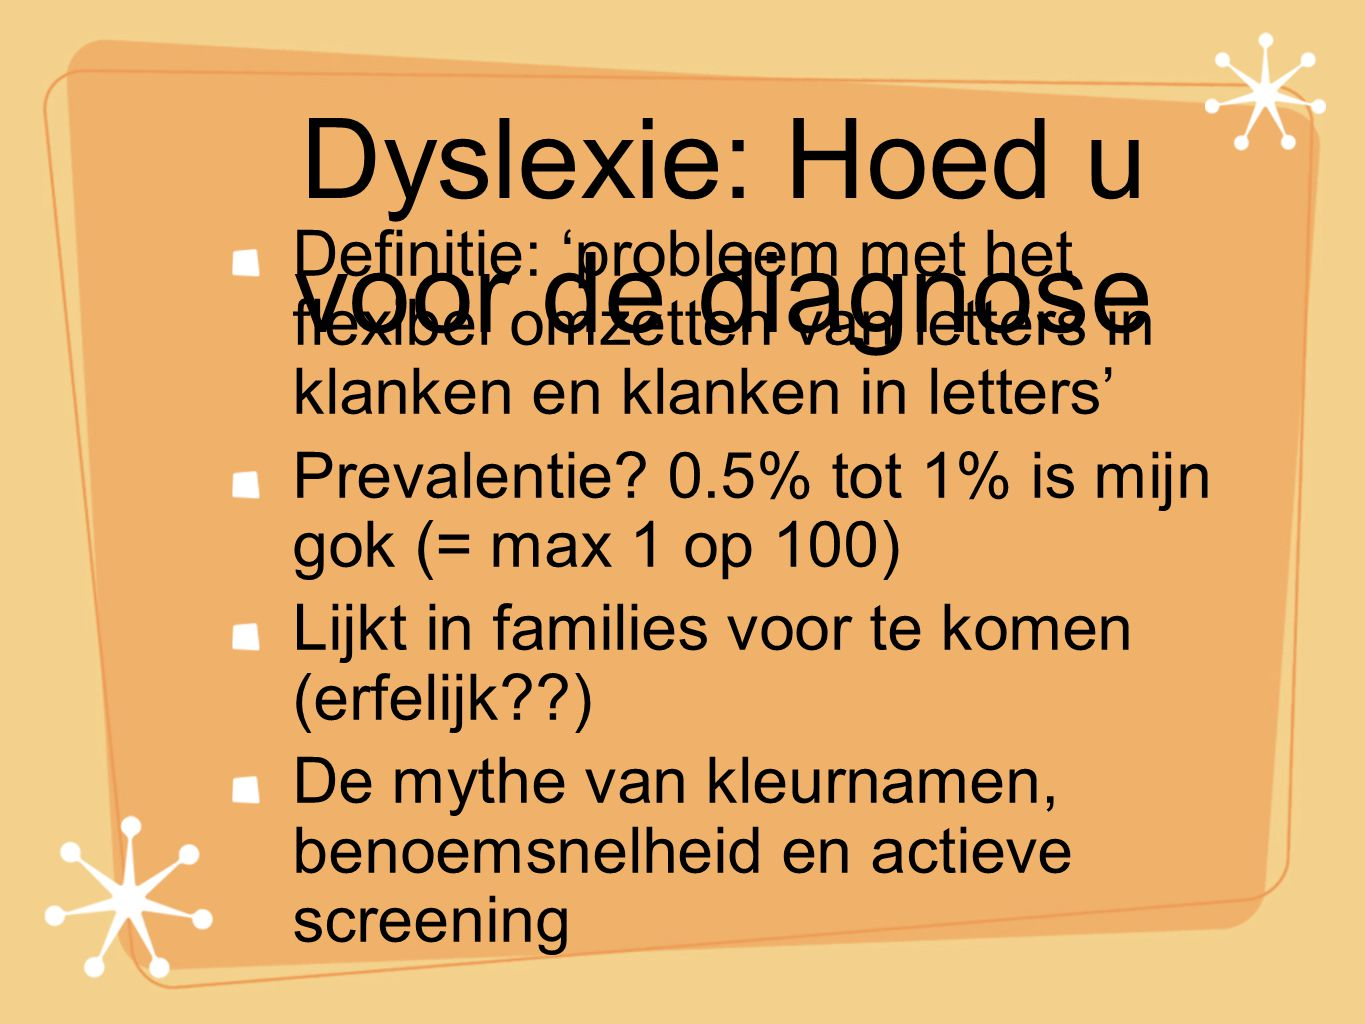 Dyslexie: Hoed u voor de diagnose